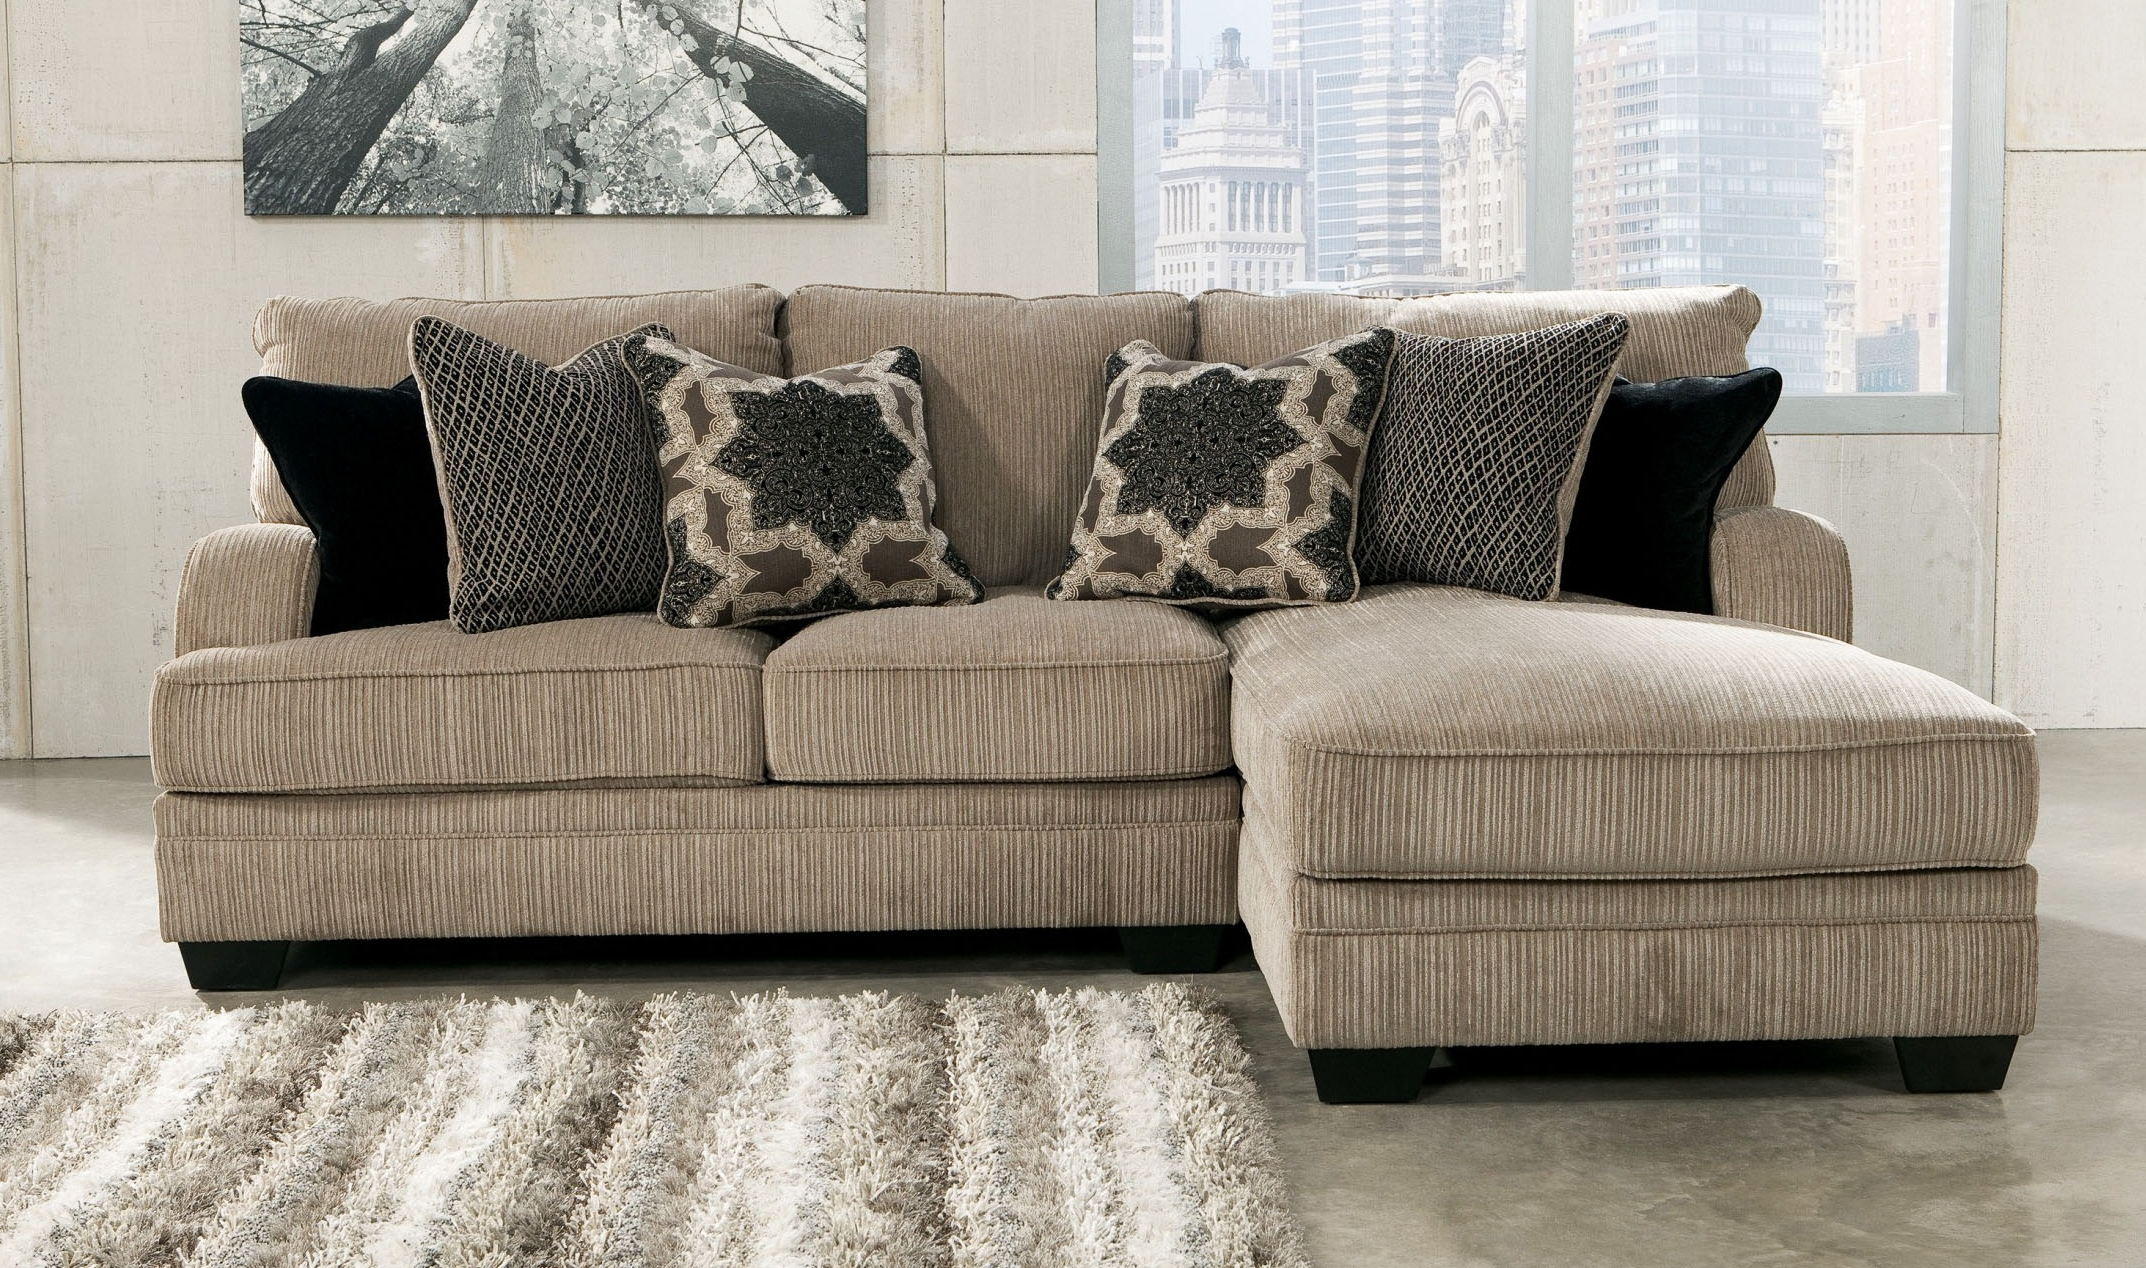 Widely Used Small Sectional Sofas With Chaise And Ottoman Within Luxury Small Sectional Sofa With Chaise Lounge 79 For Stickley (View 2 of 20)